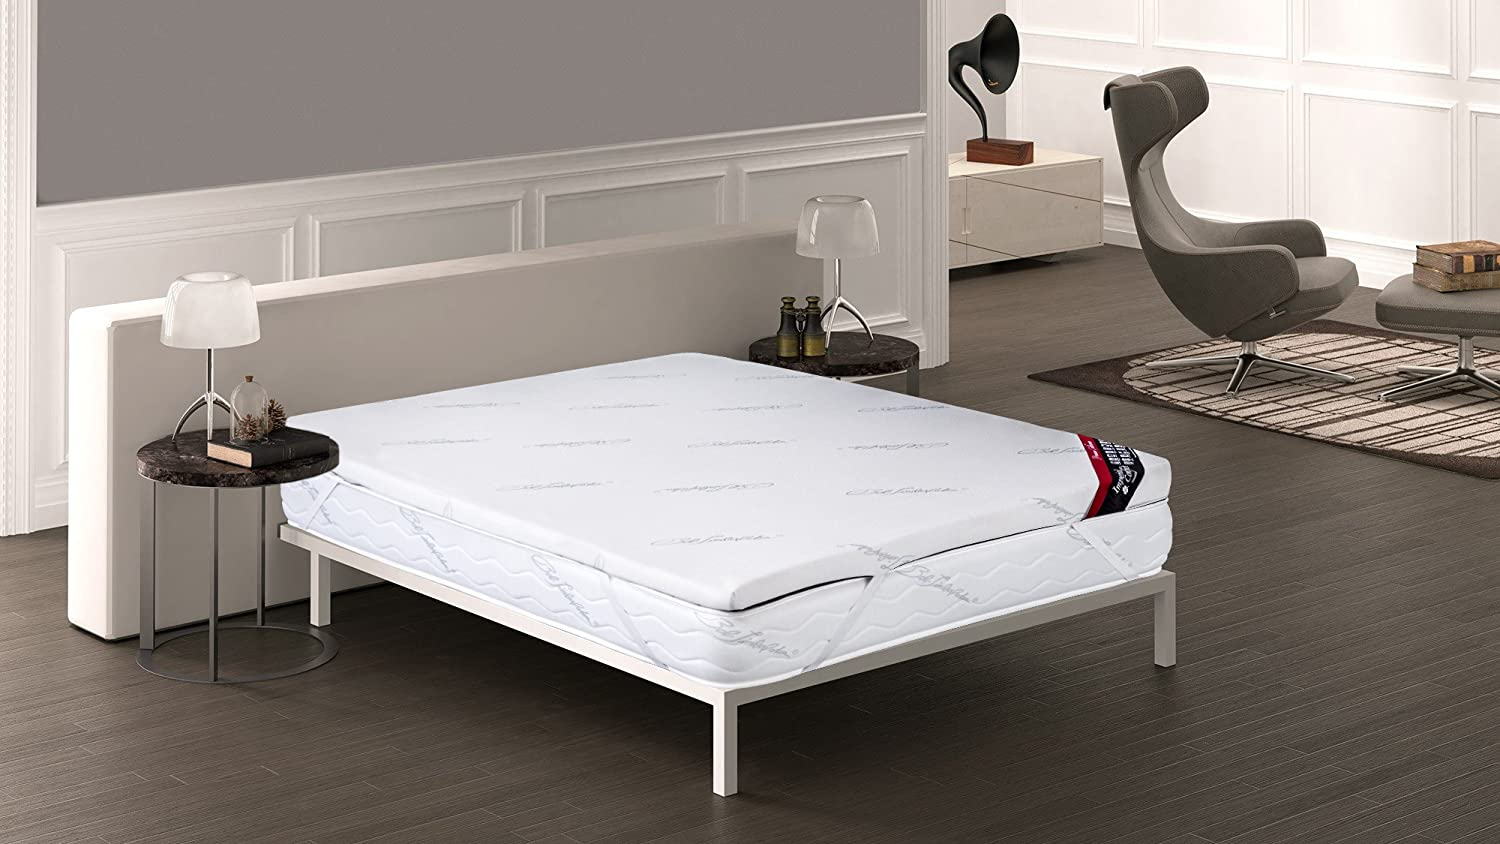 Imperial Confort - Topper viscoelástico - 150 x 190 cm - Grosor 8 cm: Amazon.es: Hogar